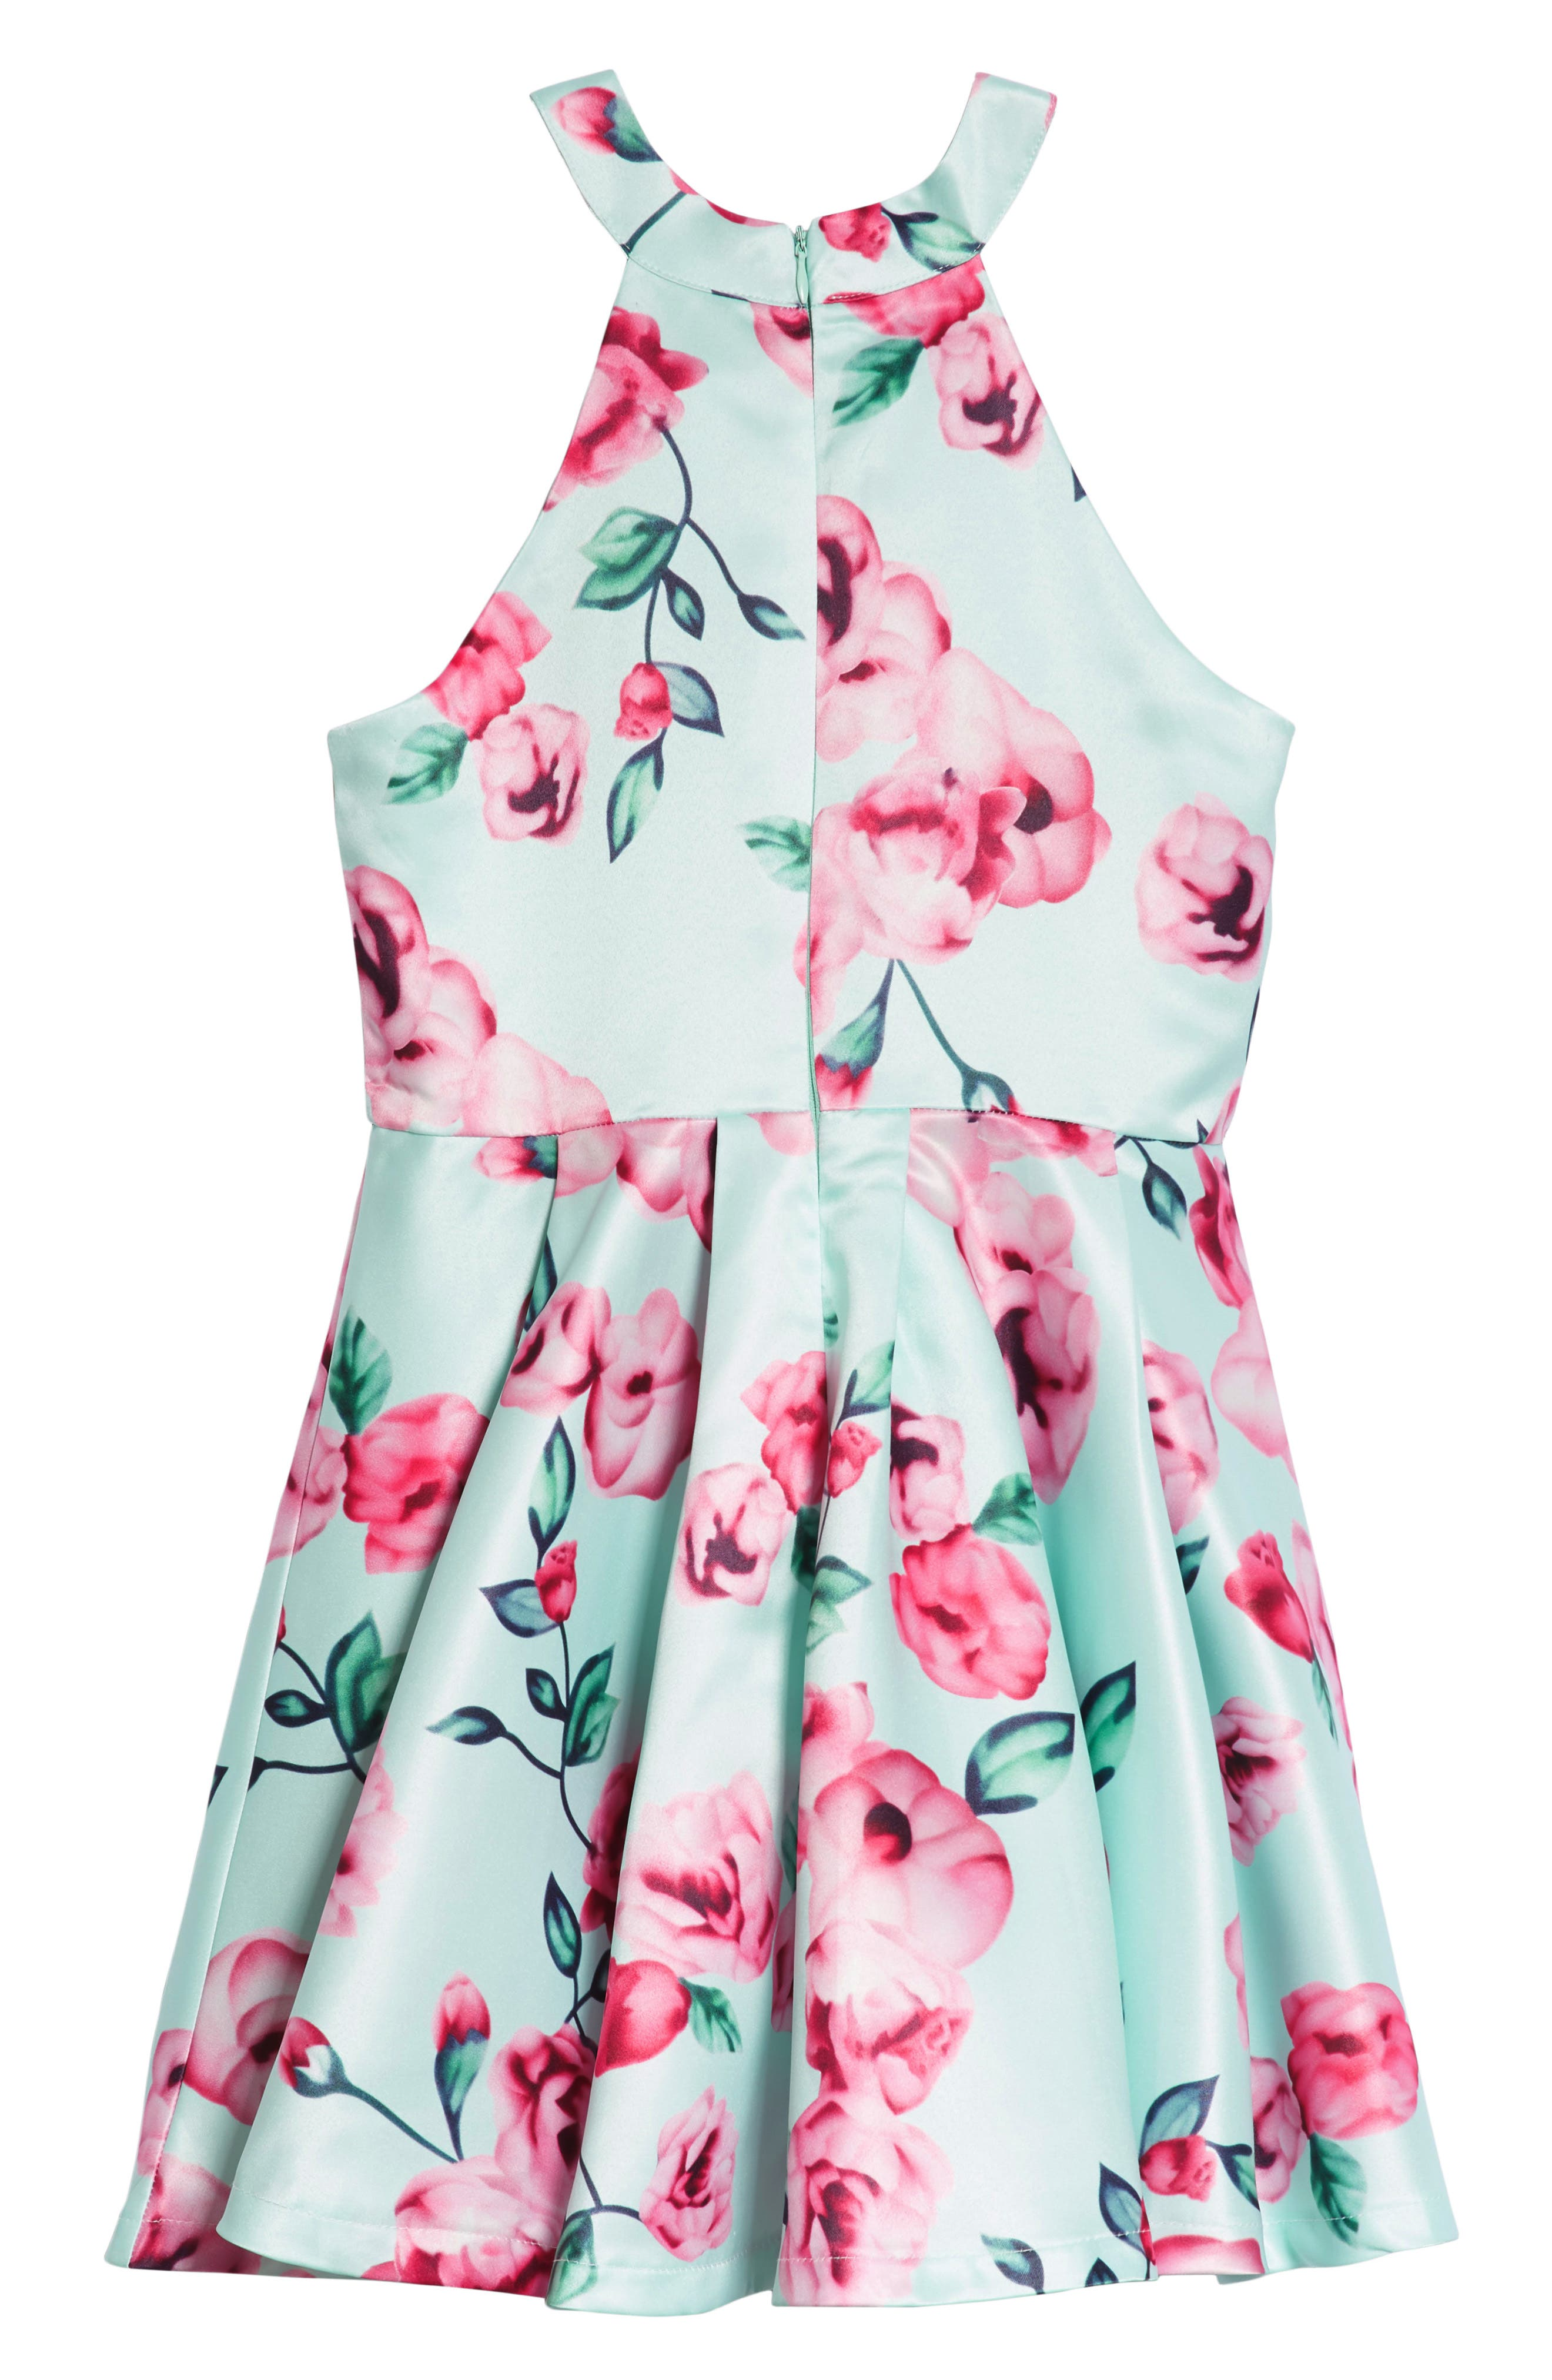 Floral Fit & Flare Dress,                             Alternate thumbnail 2, color,                             300